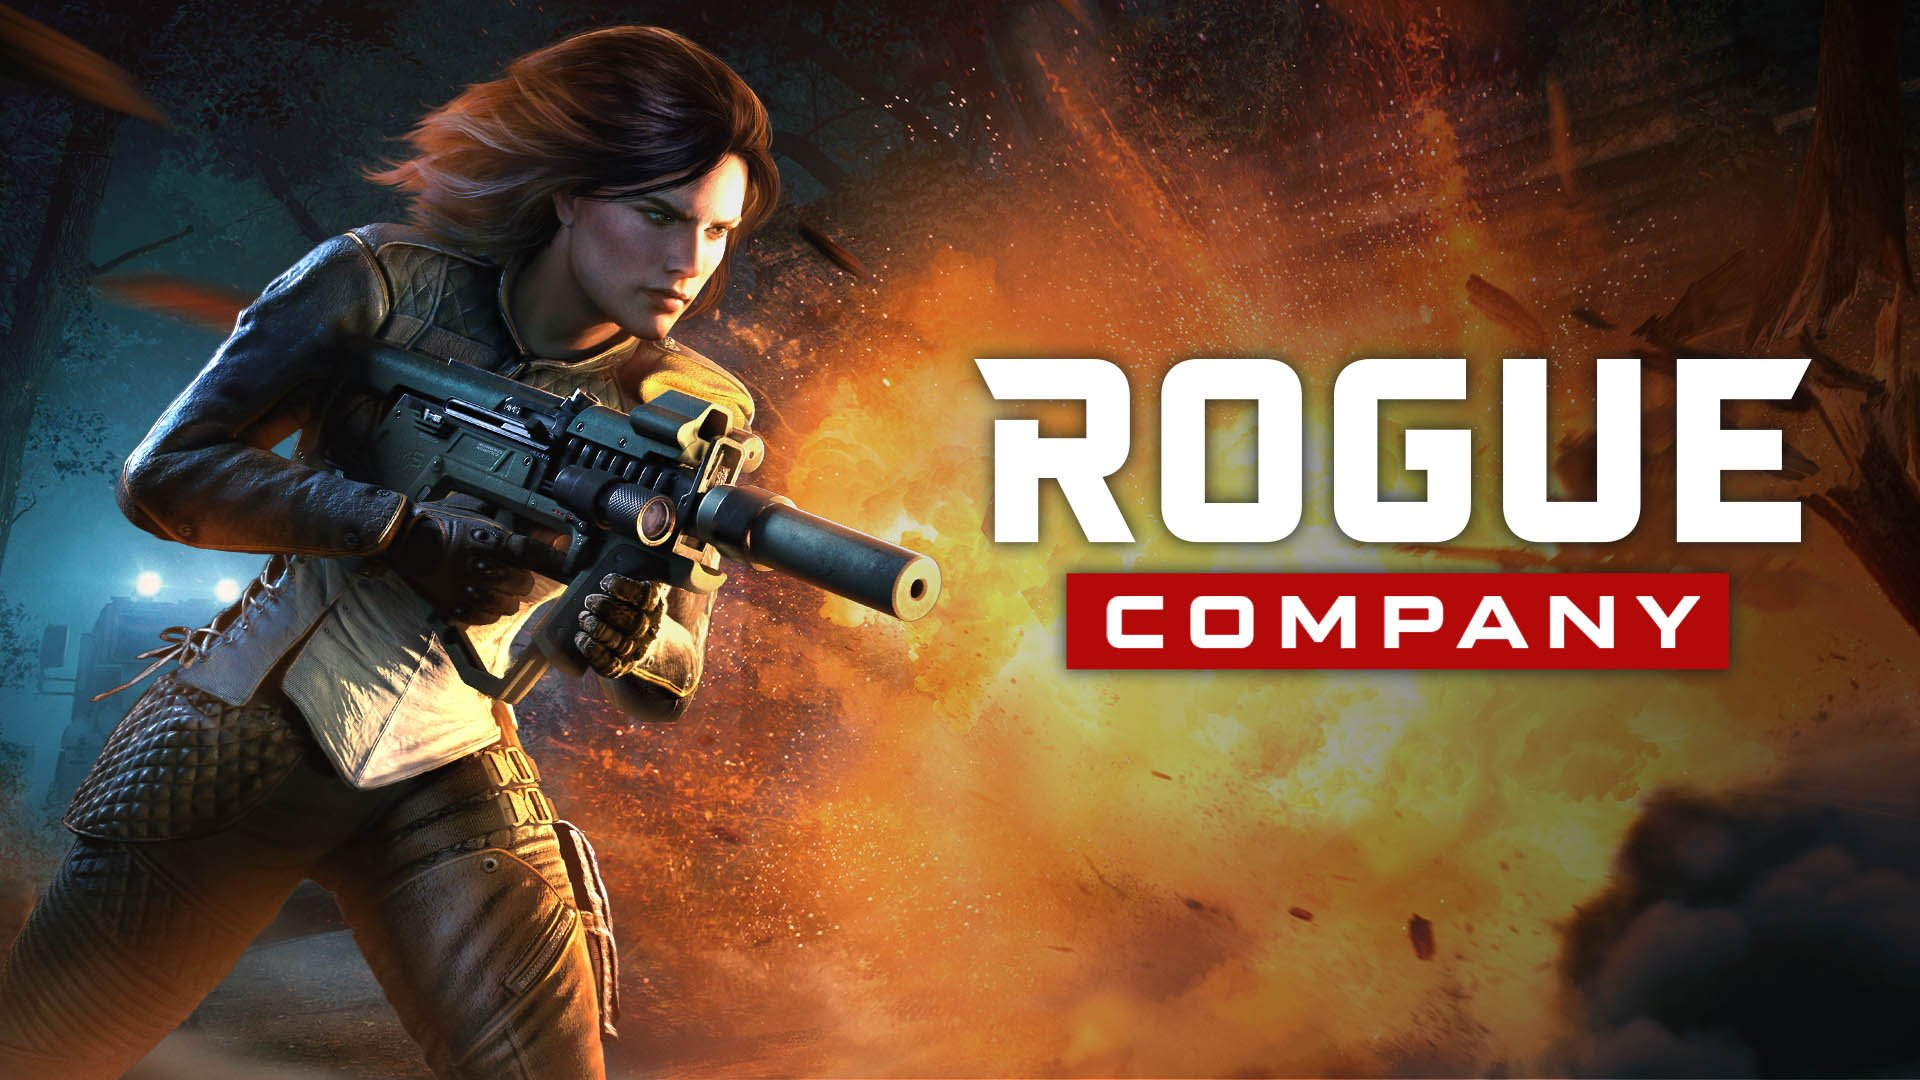 Recensione Rogue Company 2020 2 - Hynerd.it